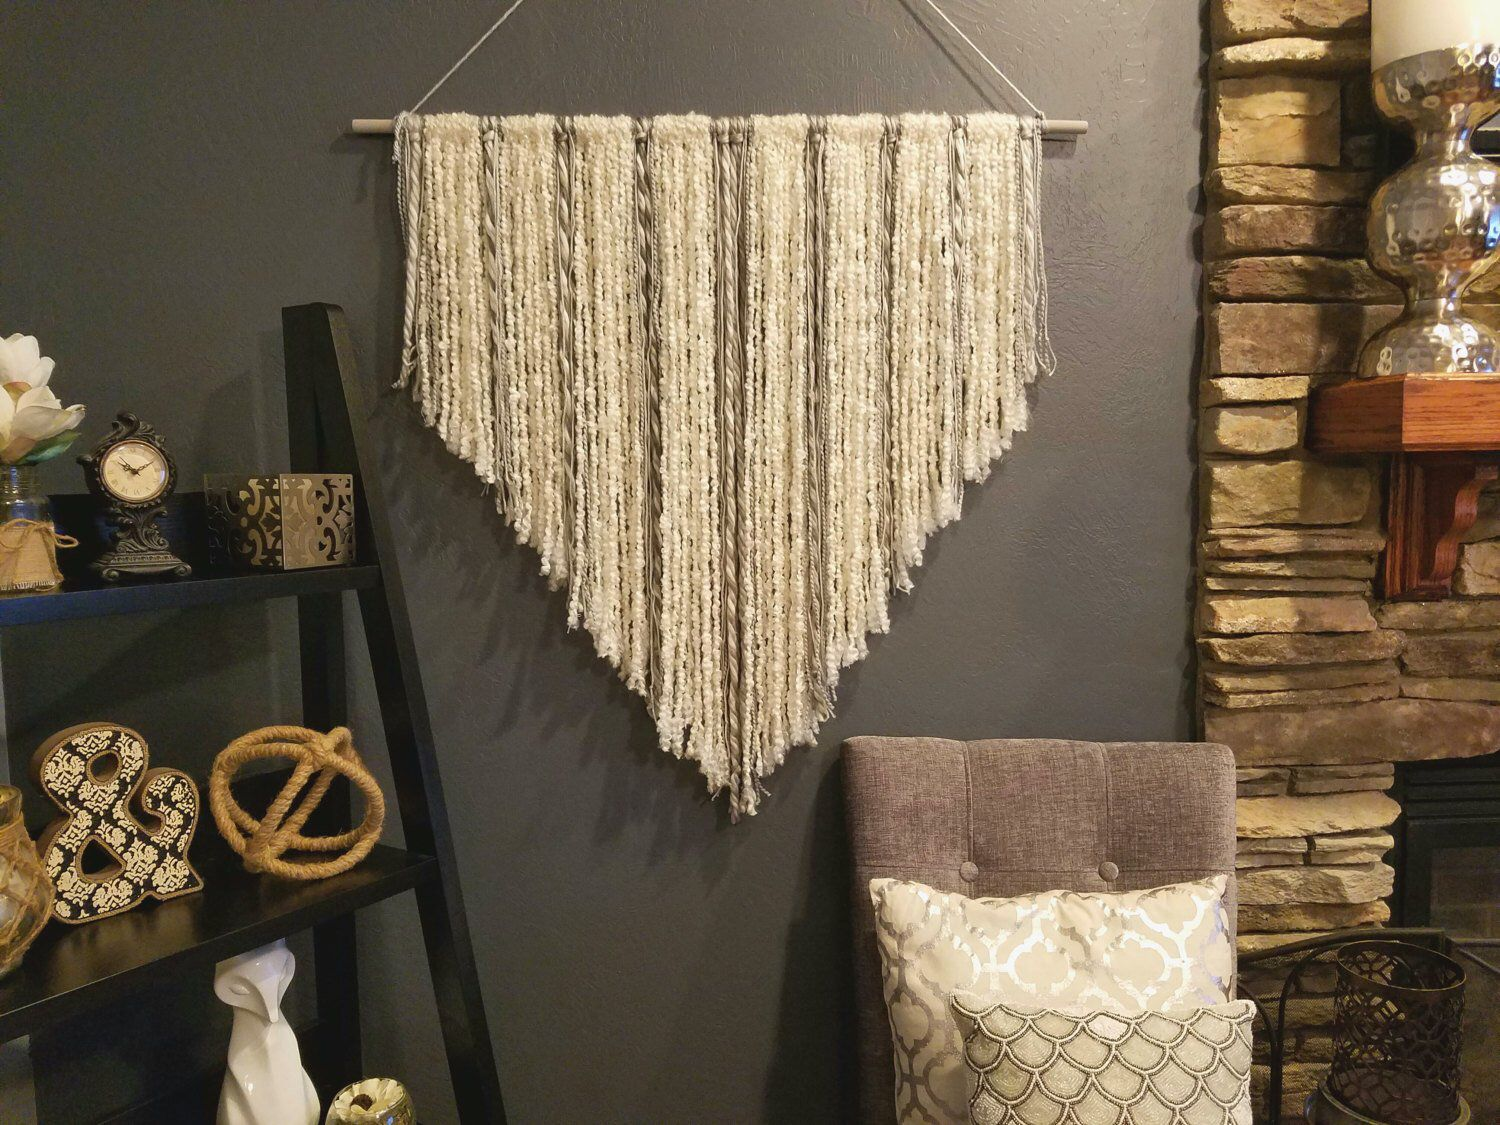 Boho Wall Hanging, Boho nursery, above crib art, boho chic, woven, bedroom art, hanging wall art, above bed art, tribal nursery, wall art is part of Boho bedroom Art - This cream and grey yarn boho wall hanging is made from the highest quality wool to give lots of depth and texture to your wall  Imagine how unique your space will look with this hanging in it  This is a large wall hanging and can definitely liven up any space  It looks great over couches, beds, cribs, in kid rooms, nearly anywhere!  I am happy to customize this hanging to any color combination you like  If you need the perfect fit for a nursery or any other room I am happy to help! Don't hesitate to ask  I am happy to match colors    I do have an add on feature ($7 for36 inch and $10 for 48 inch) for all custom colors  I am happy to swap out some minor colors at no charge! Just message me and we can talk!  This listing at the lower price is only for 3 colors of wool  If you'd like more colors than 3 ( keep in mind 2 are the main cream and the large grey) please take a look at my other listings that contain more than 3 colors and purchase one of those for $5 more and let me know what colors you'd like   This hanging is large and can take on any wall space  It measures 3 feet wide and about 36 to 38 inches long at its longest points  Each one is custom made so they all have their own personalities and end length which makes them unique  If you would like one smaller or larger I am also happy to do that   The hanging pictured is on a 3 foot rod, but can be purchased as a bigger or smaller hanging on a 4 or 2 foot rod from the drop down options  These make wonderful house warming or wedding gifts because they are so versatile and can go in nearly any home or space beautifully  Anyone would love to receive something so unique and thoughtful  All items are made to order and hand made by me so please be aware of my current turn around times  Normally it is around 8 business days, but I do always do my best 